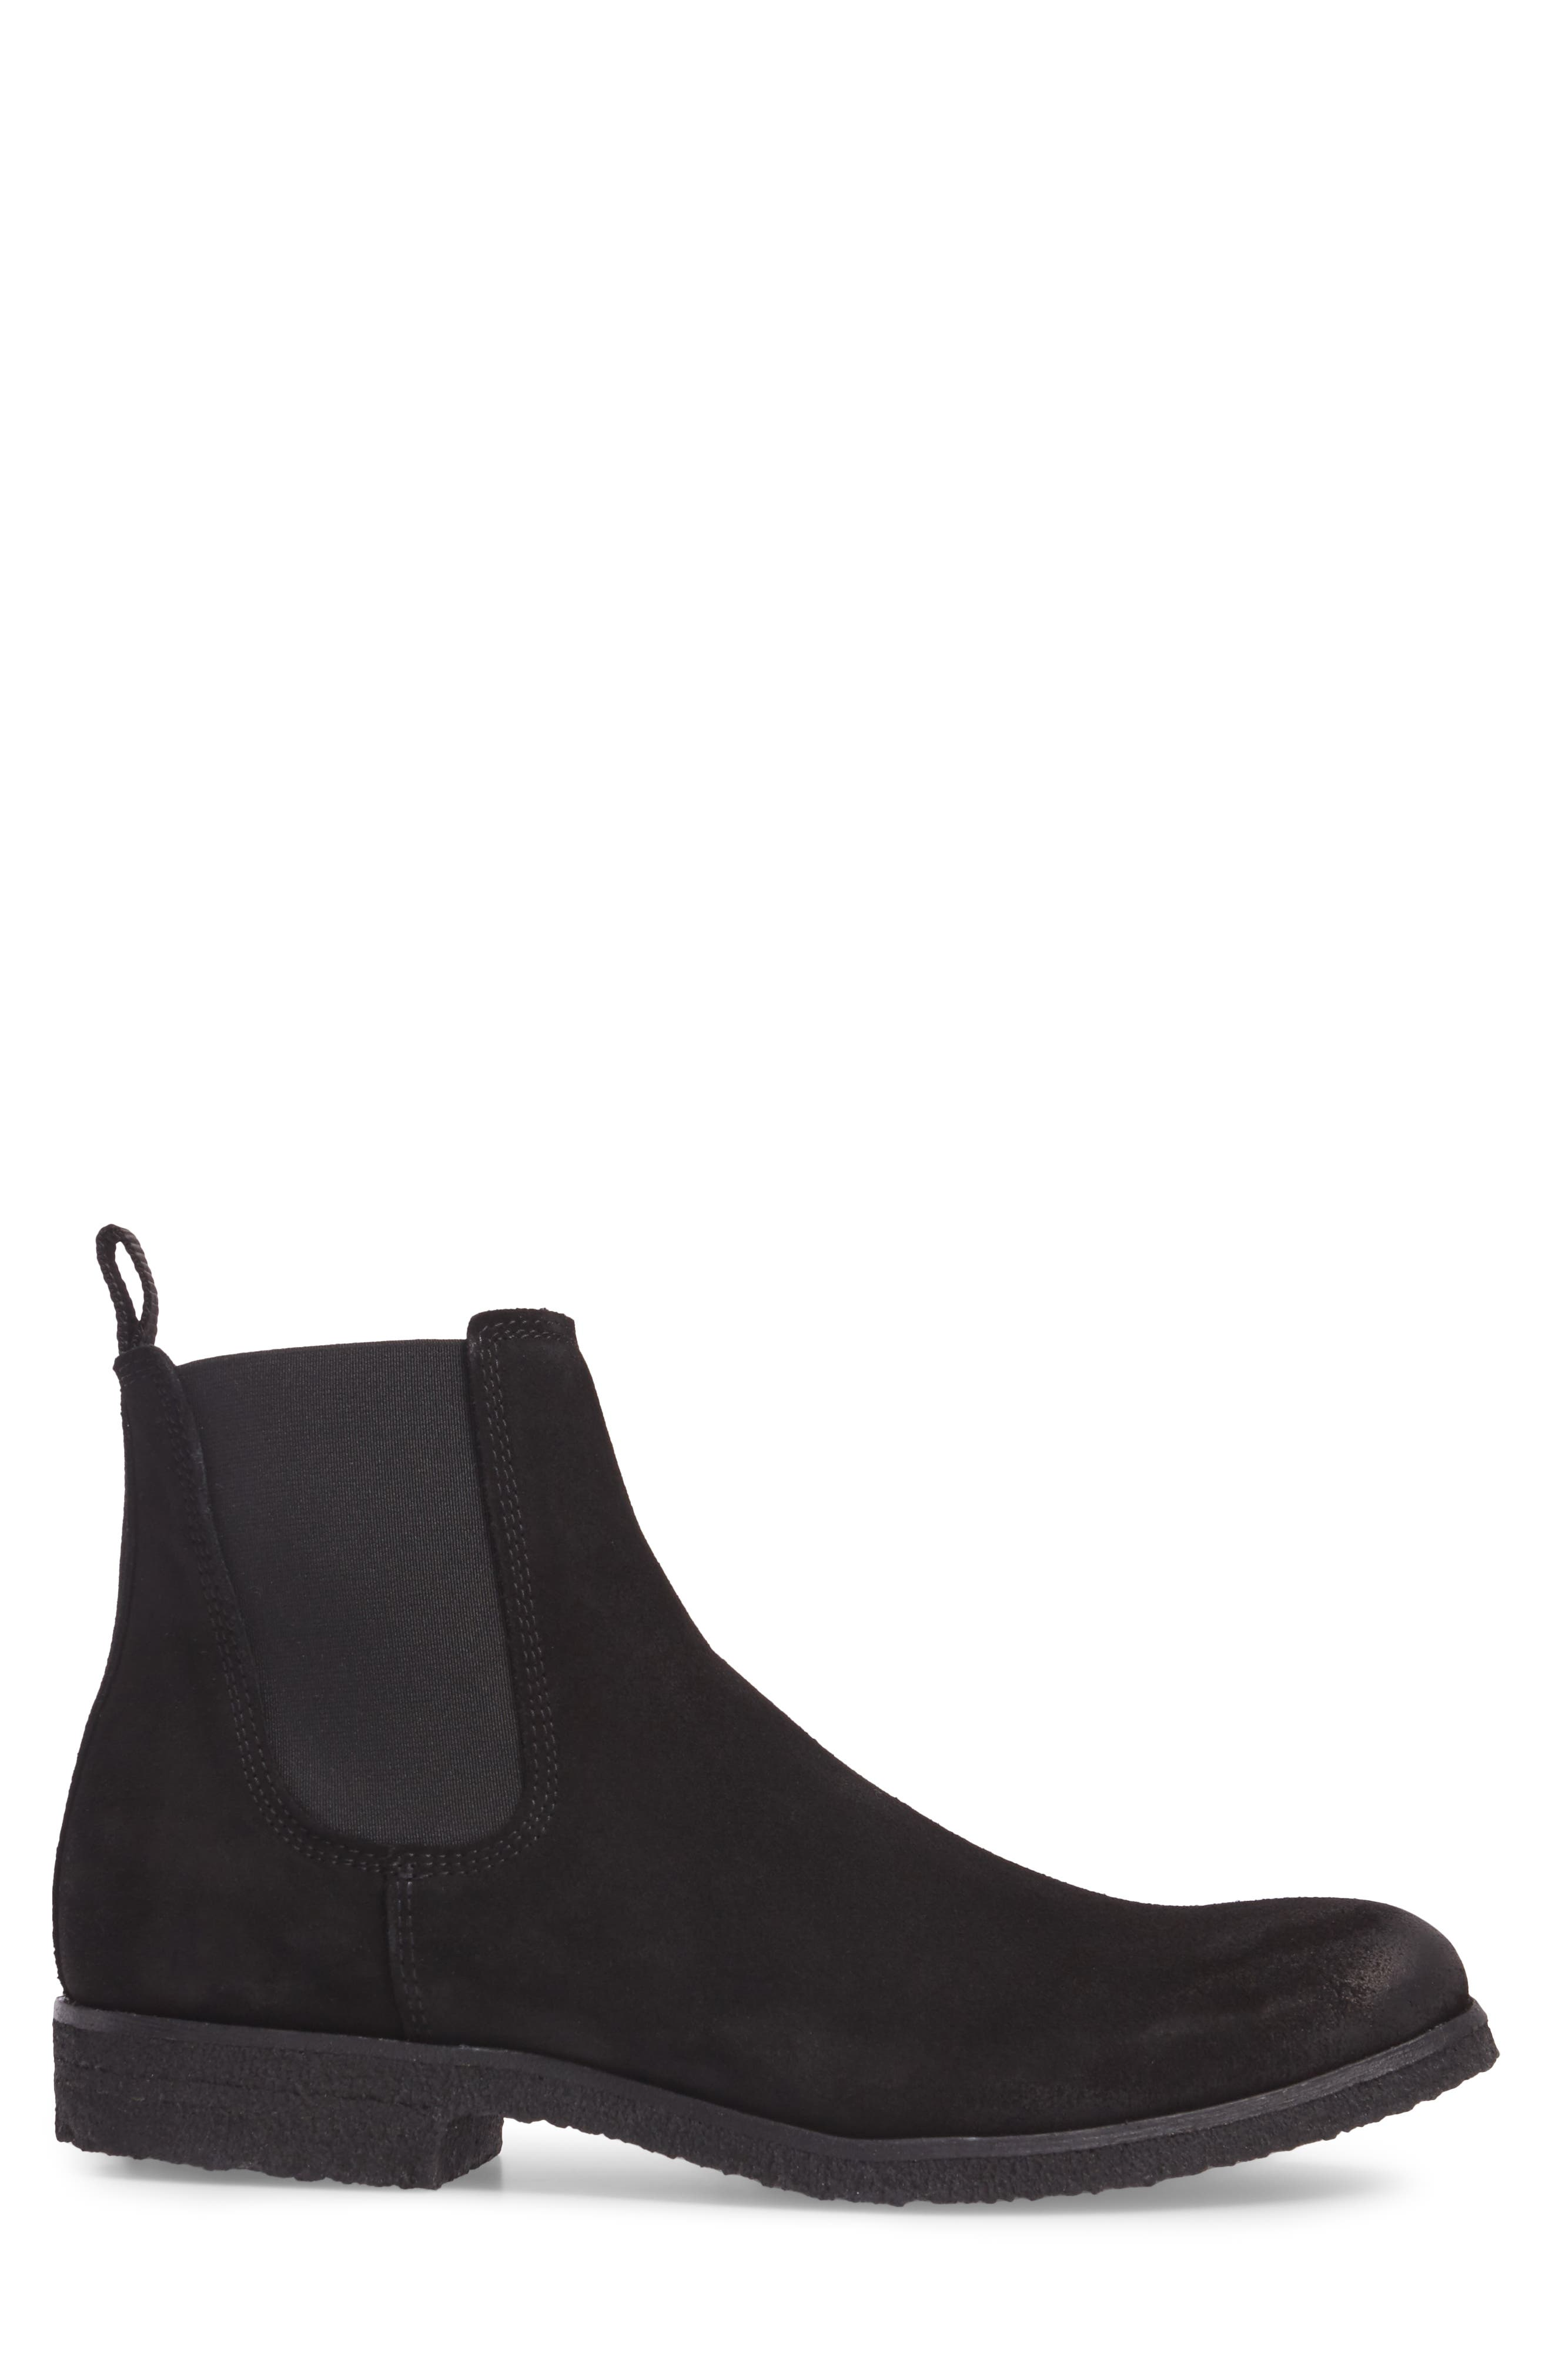 Jared Chelsea Boot,                             Alternate thumbnail 3, color,                             Black Suede